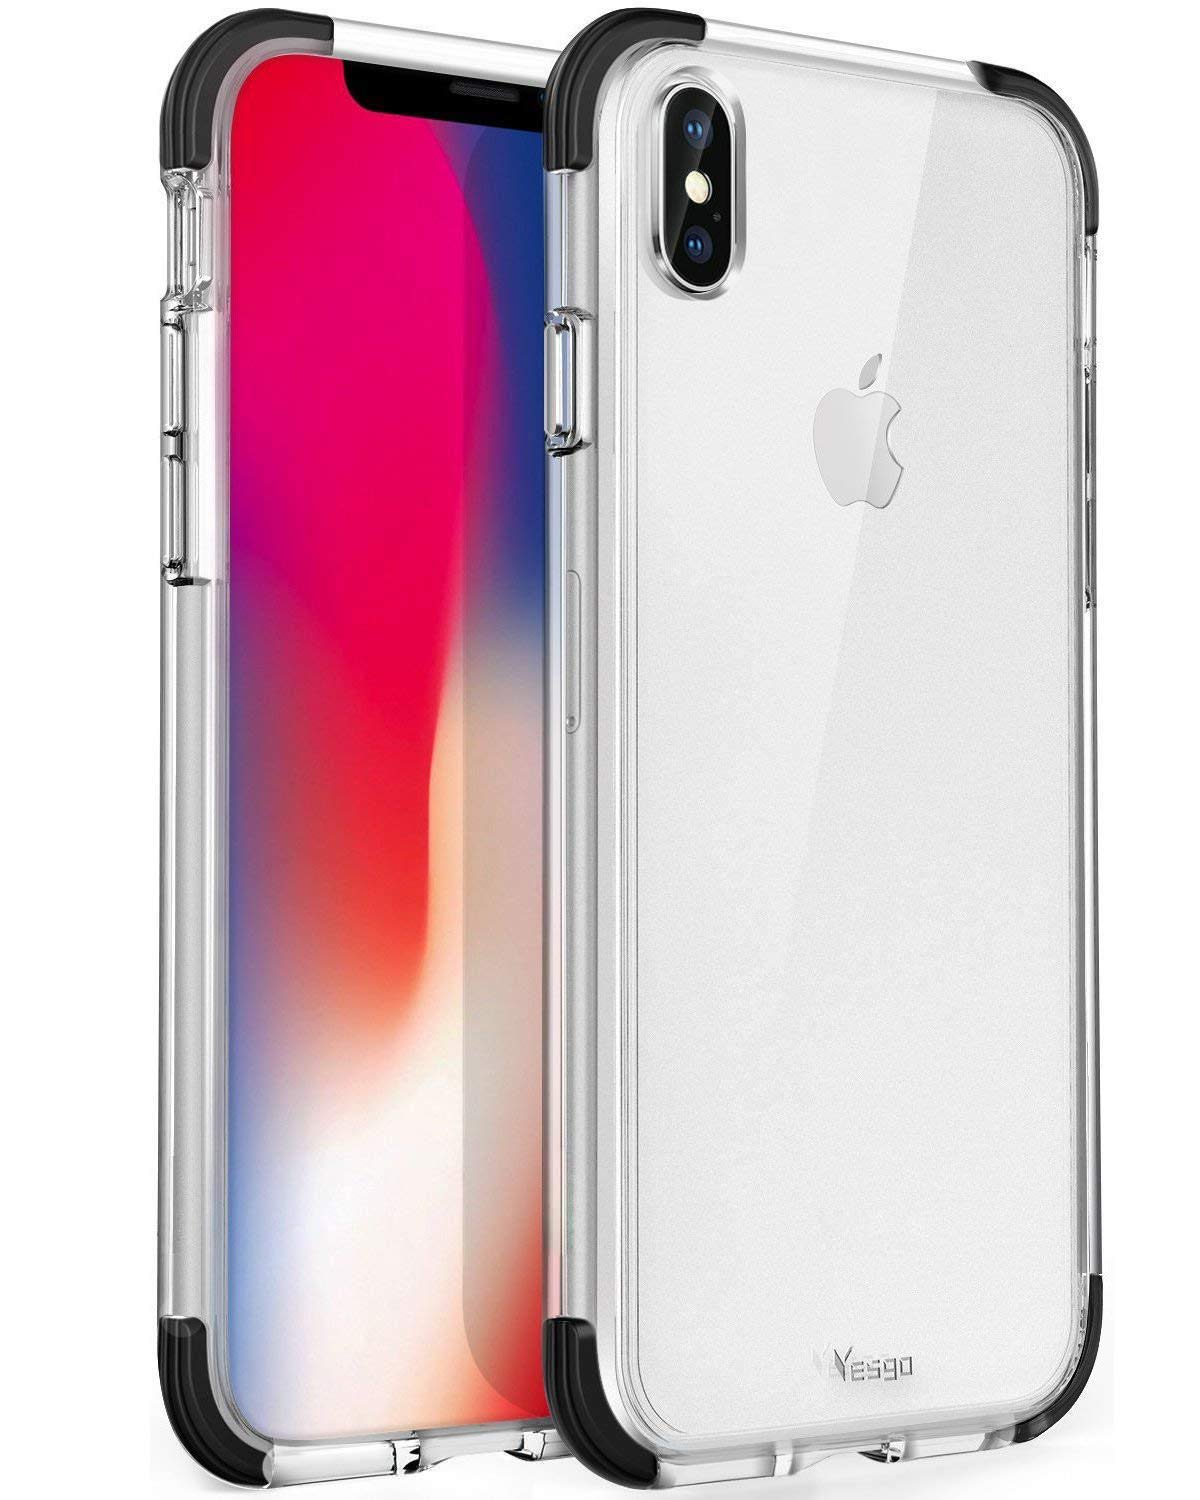 online store 5ffa9 6517b Mkeke Compatible with iPhone Xs Case,iPhone X Case,Clear Anti-Scratch Shock  Absorption Cover Case for iPhone Xs/X (Crystal Clear)